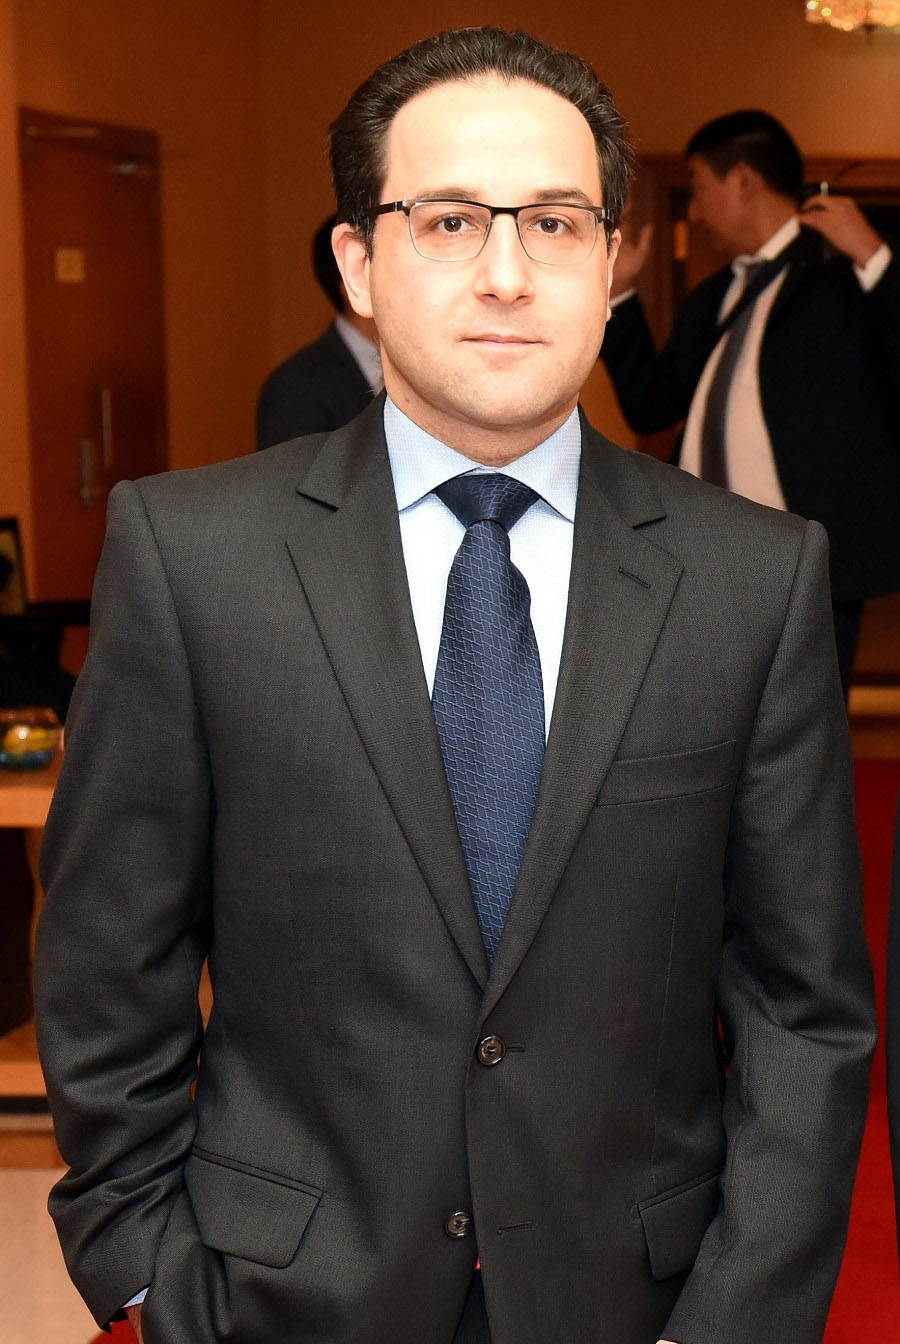 Khaled-Abou-Zahr-founder-of-the-Private-Equity-Forum.jpg